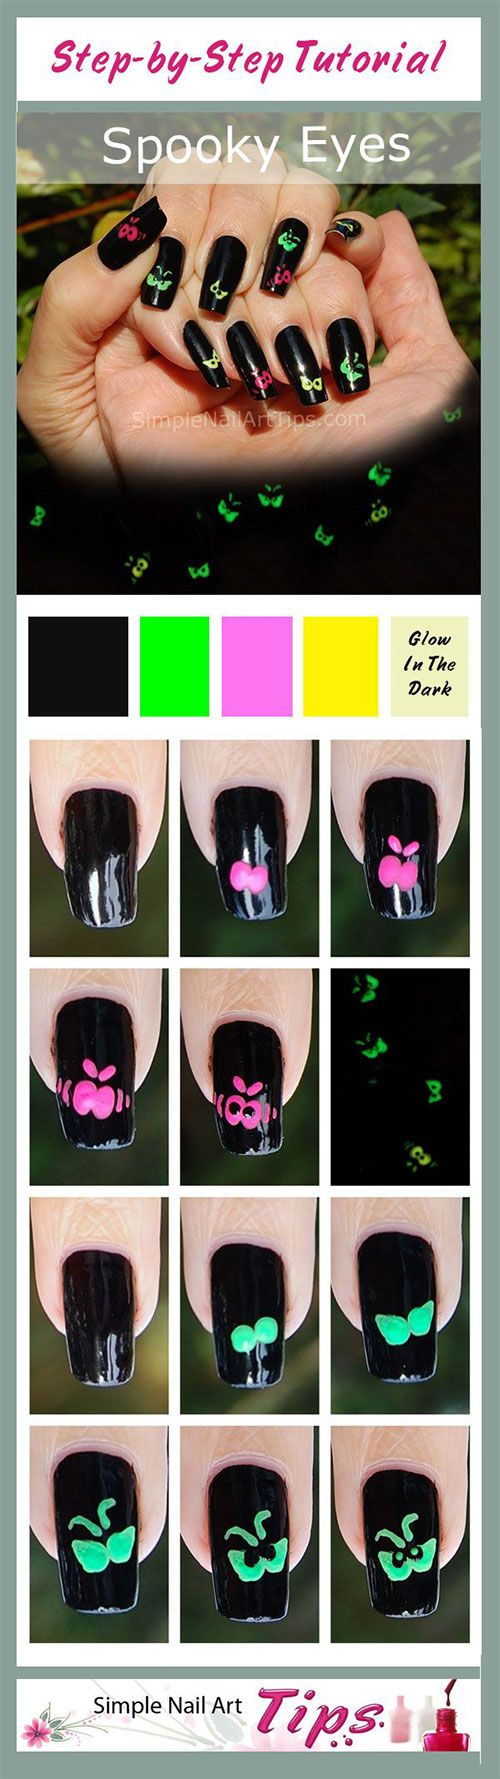 Simple-Easy-Scary-Halloween-Nail-Art-Tutorials-2013-2014-For-Beginners-Learners-1